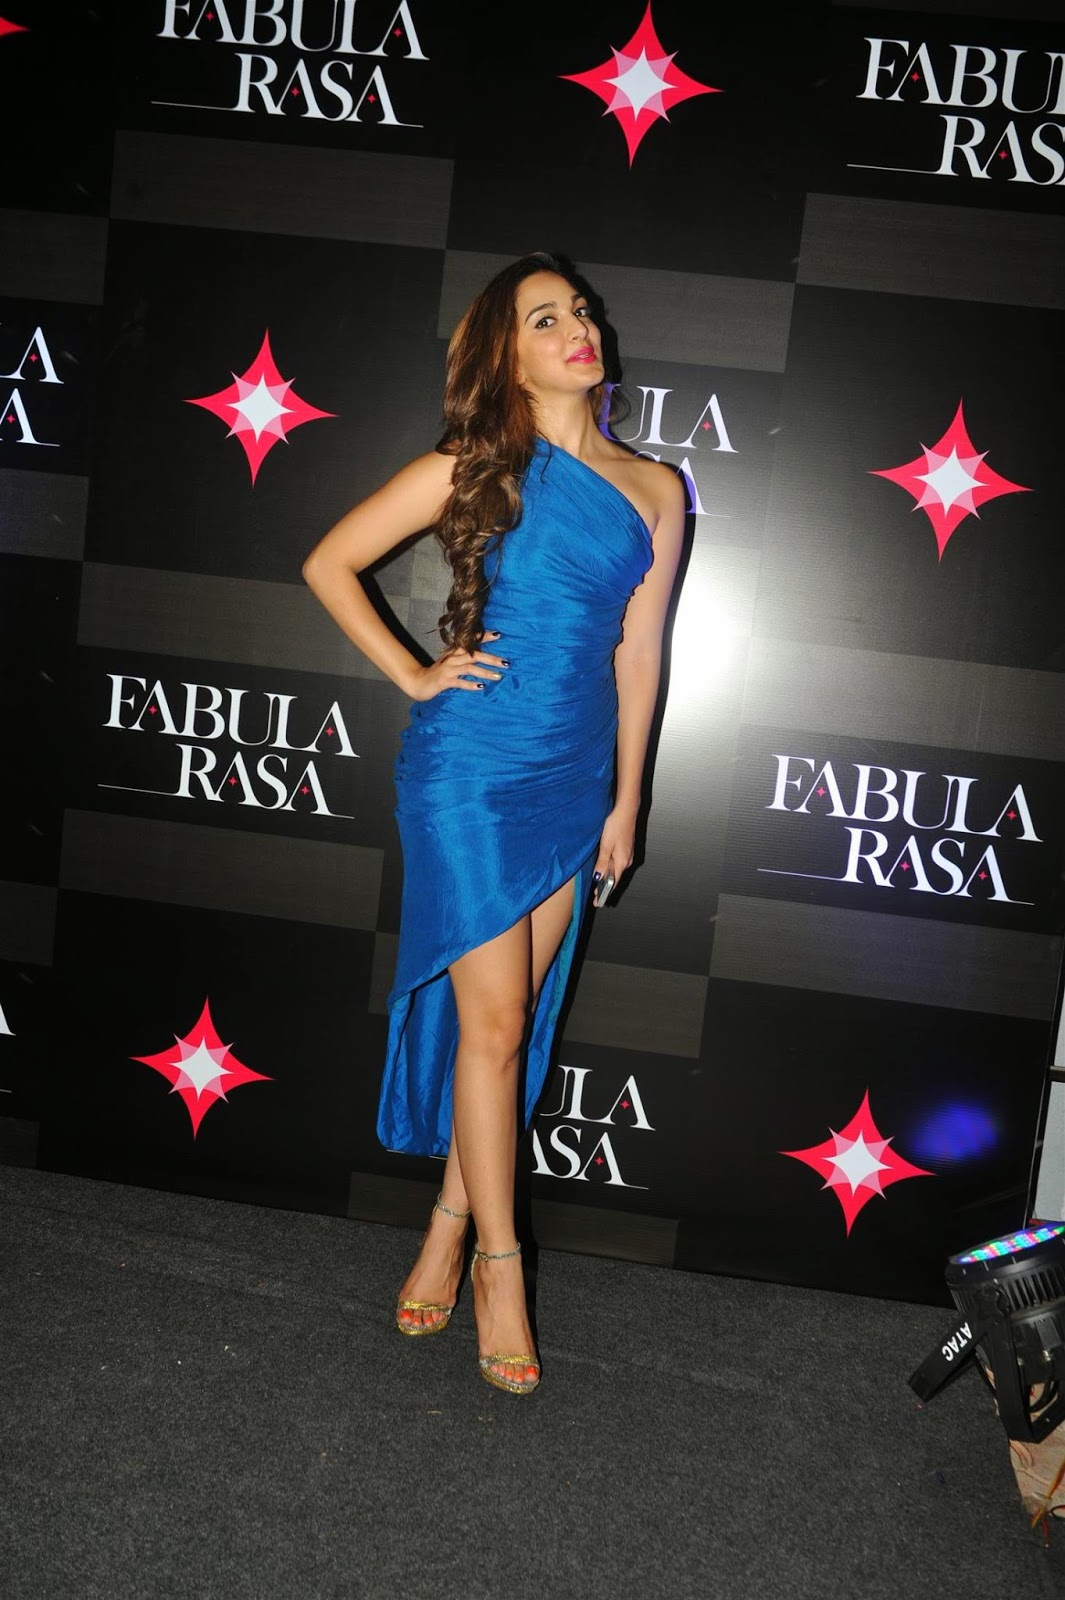 Kiara Advani at Fabula Rasa Show Room Launch Event Photo